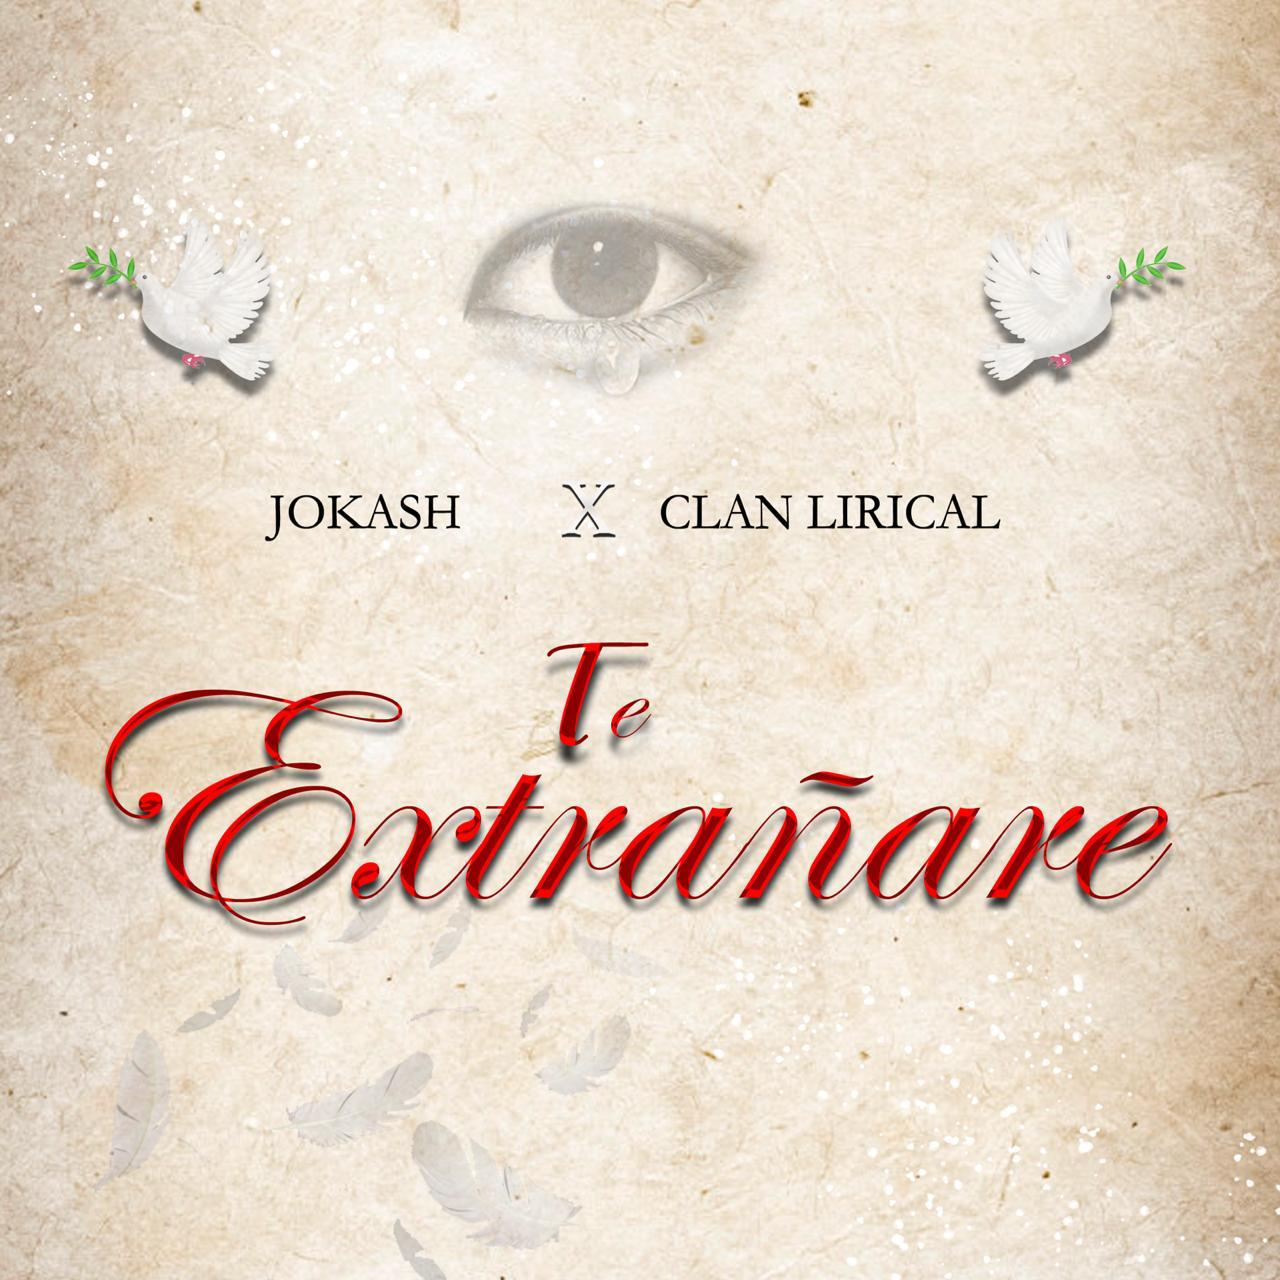 Jokash ft Clan Lirical - Te Extrañare